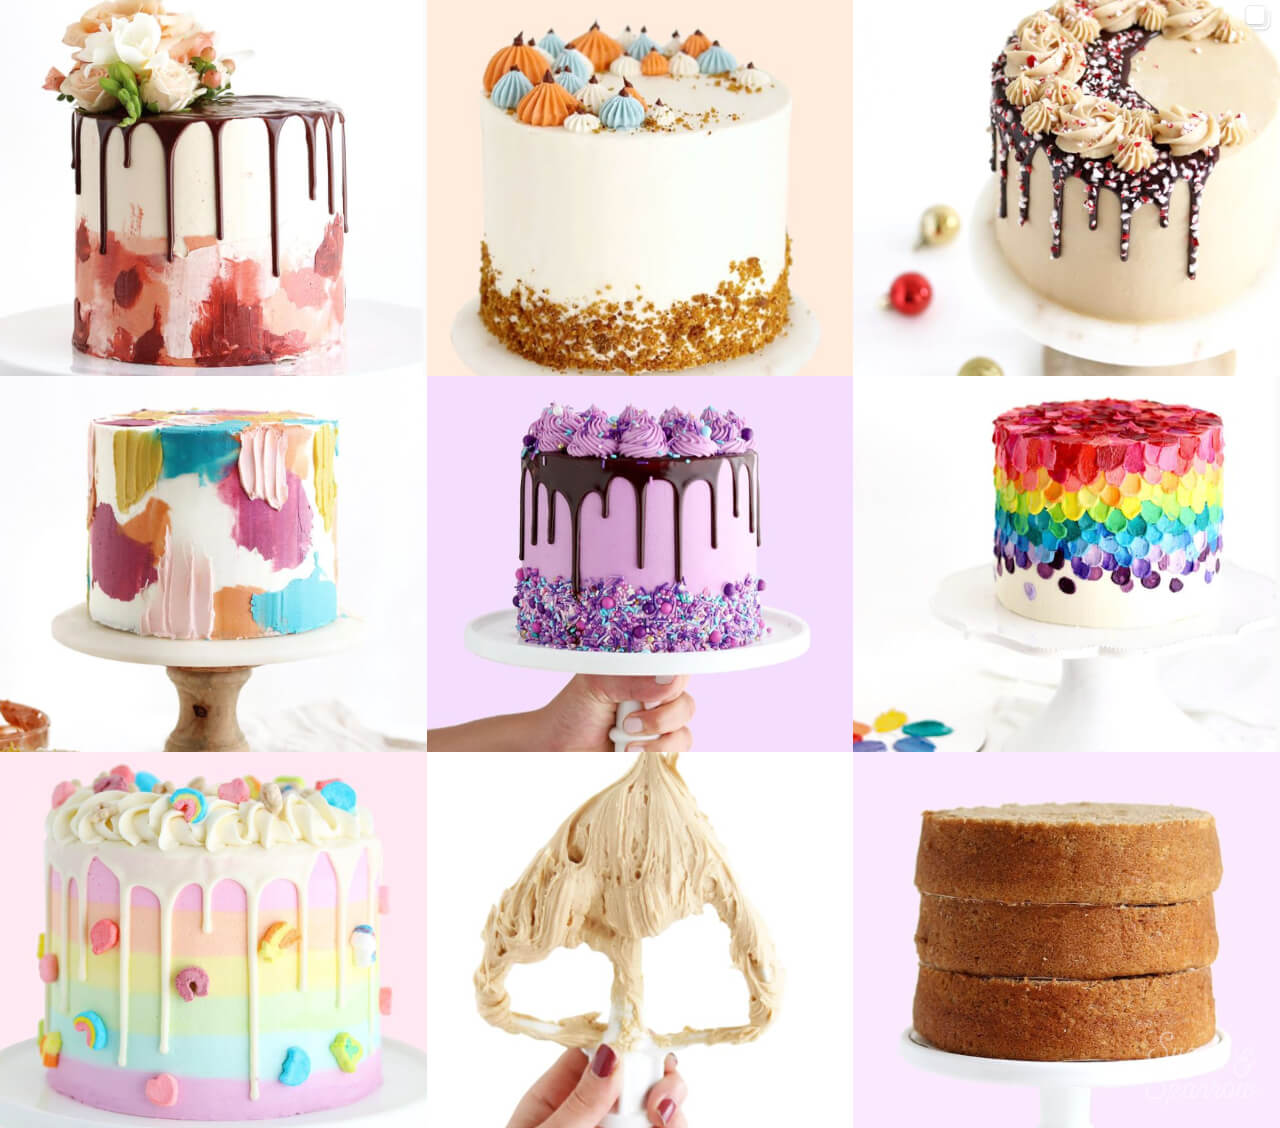 best cake recipes 2020